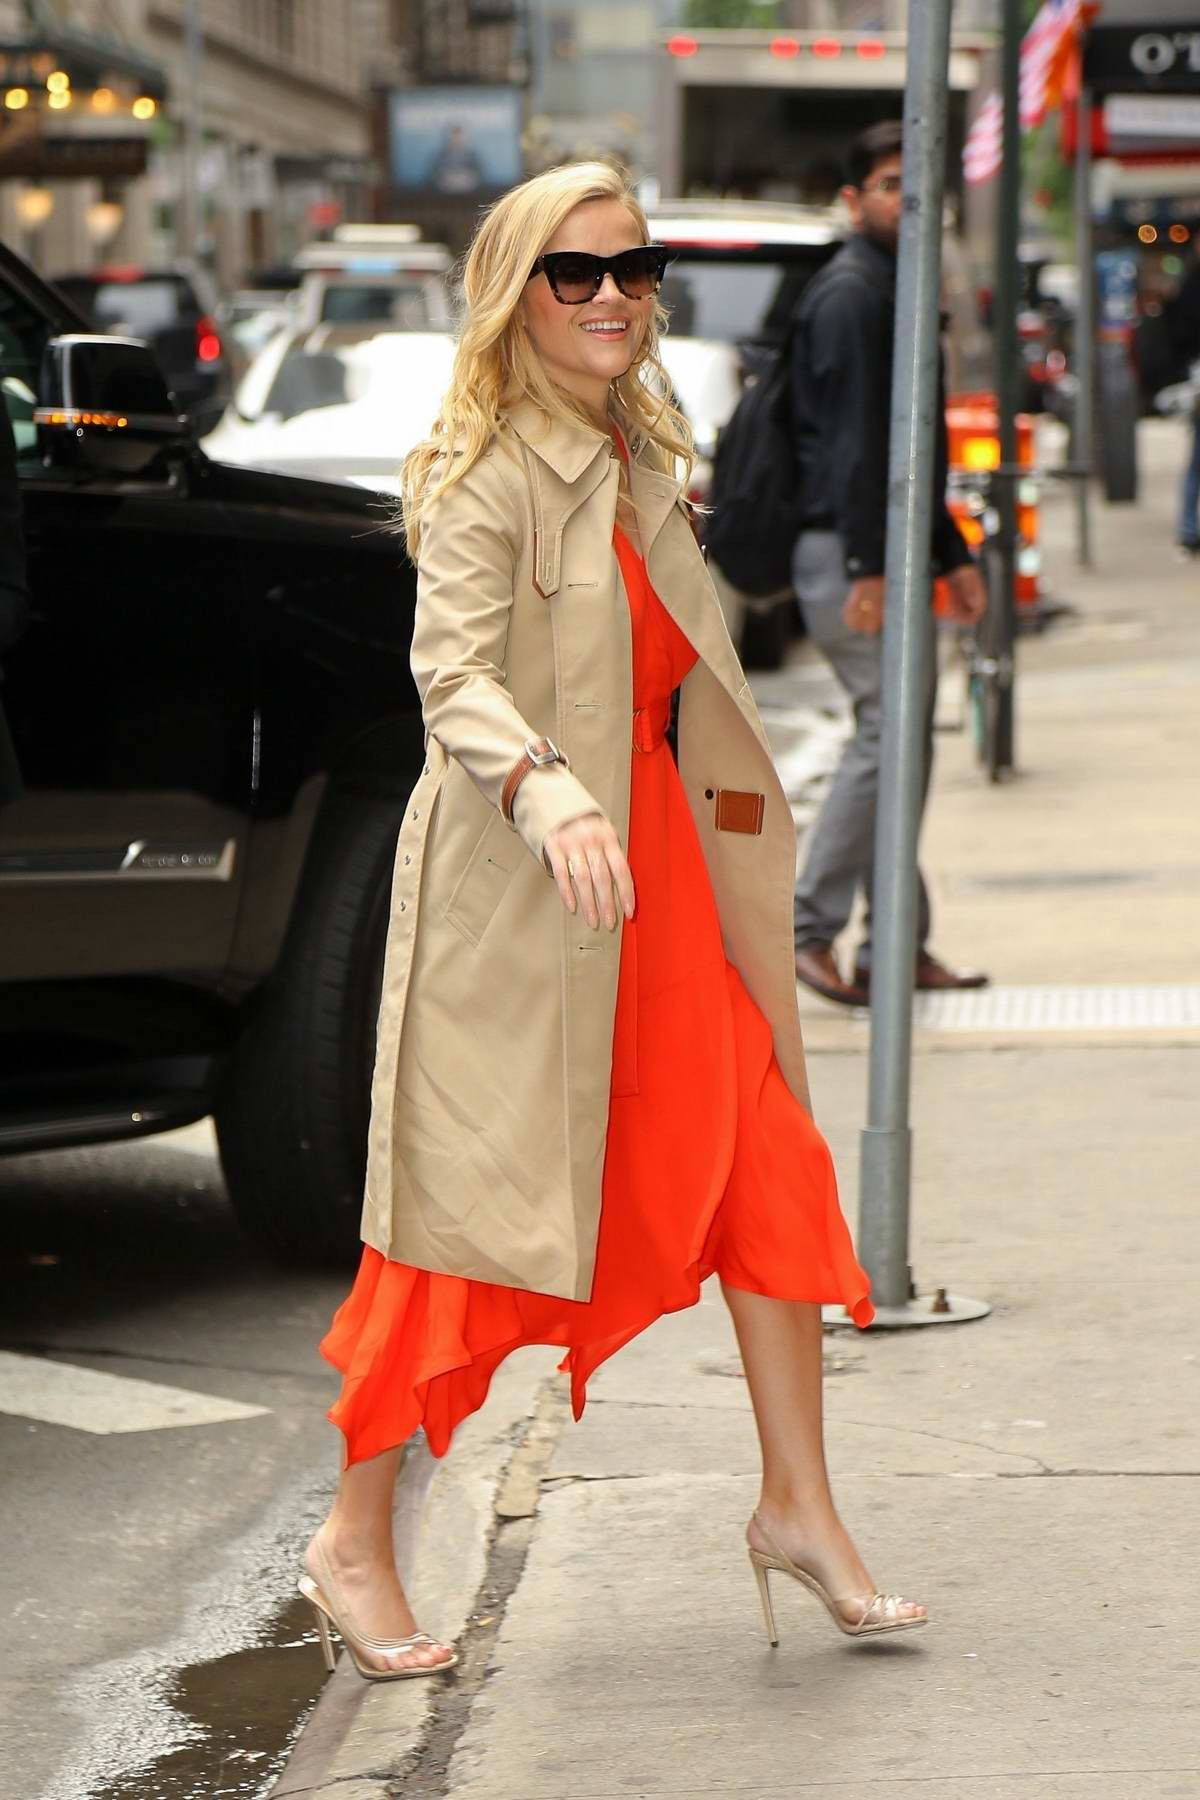 Reese Witherspoon looks striking in a bright red dress as she arrives at Good Morning America to promote 'Big Little Lies' in New York City